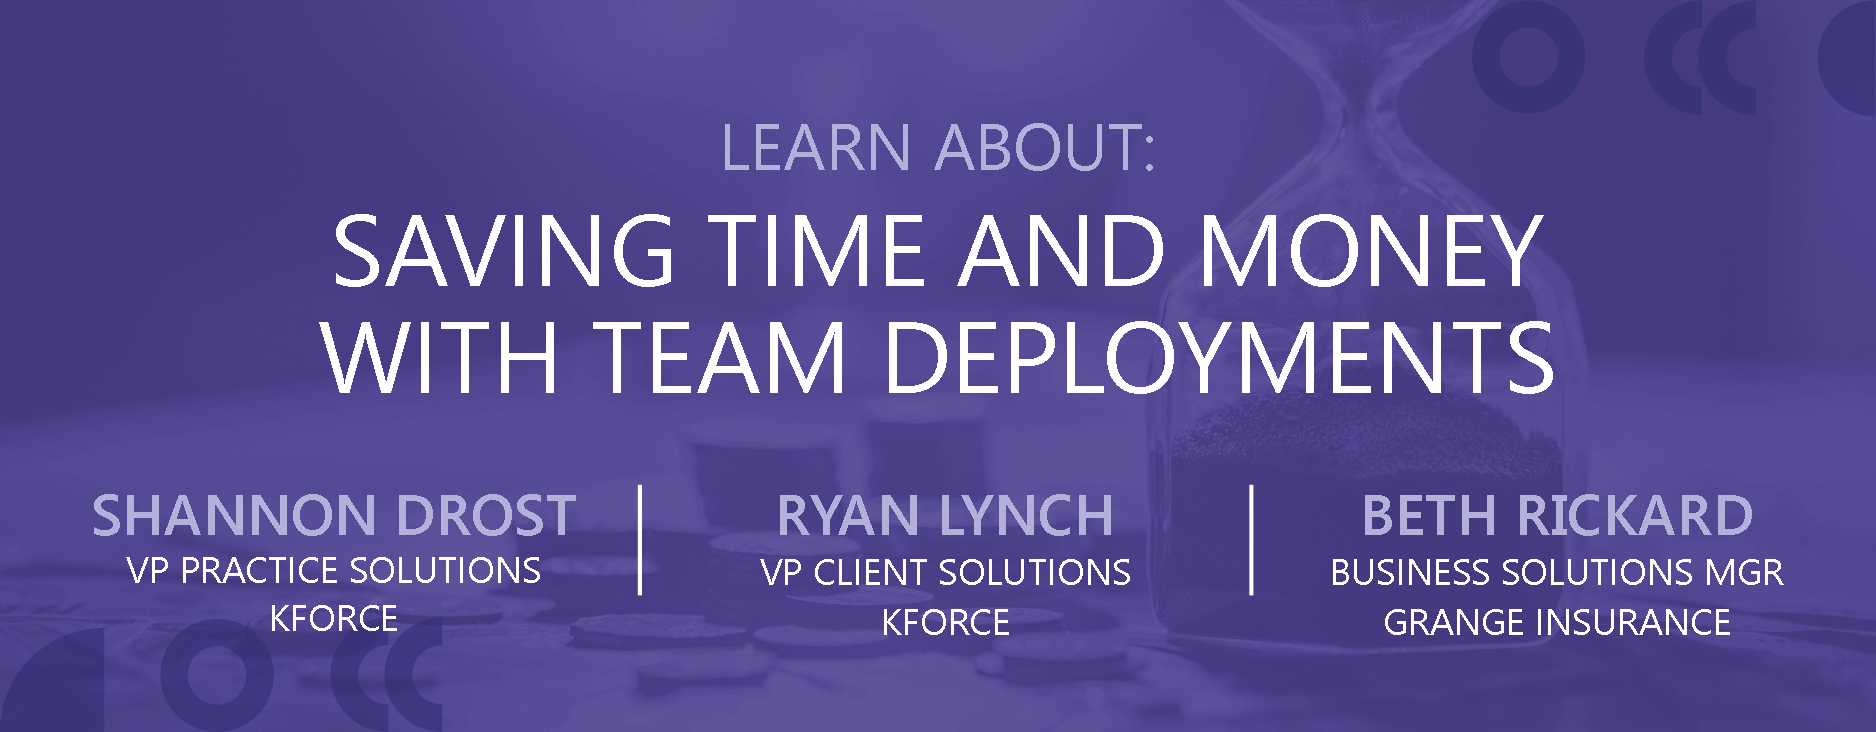 Saving Time and Money With Team Deployments